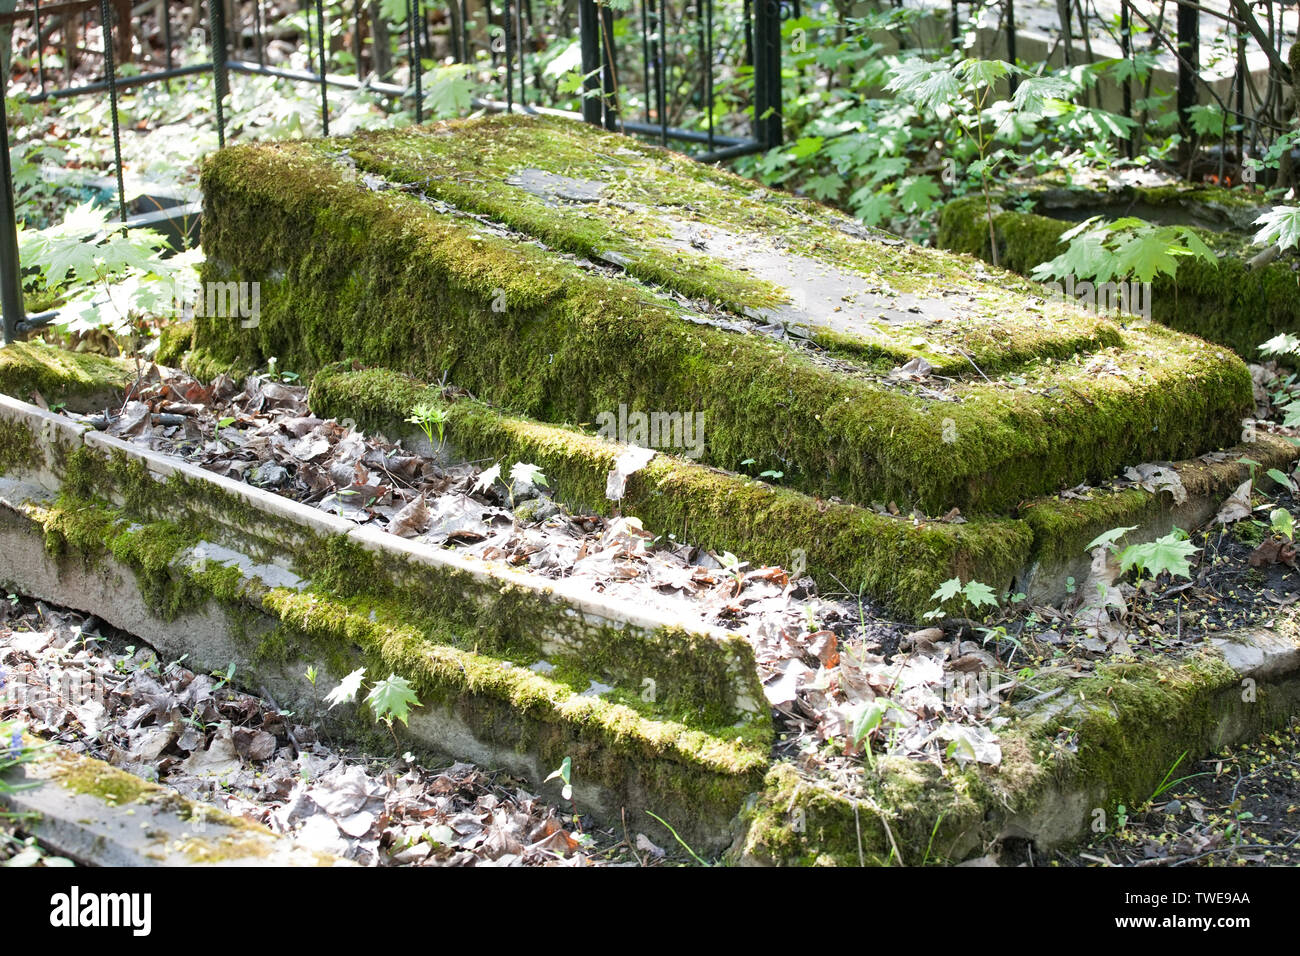 Stone Cemetery Grave Monument Covered With Moss Closeup View On